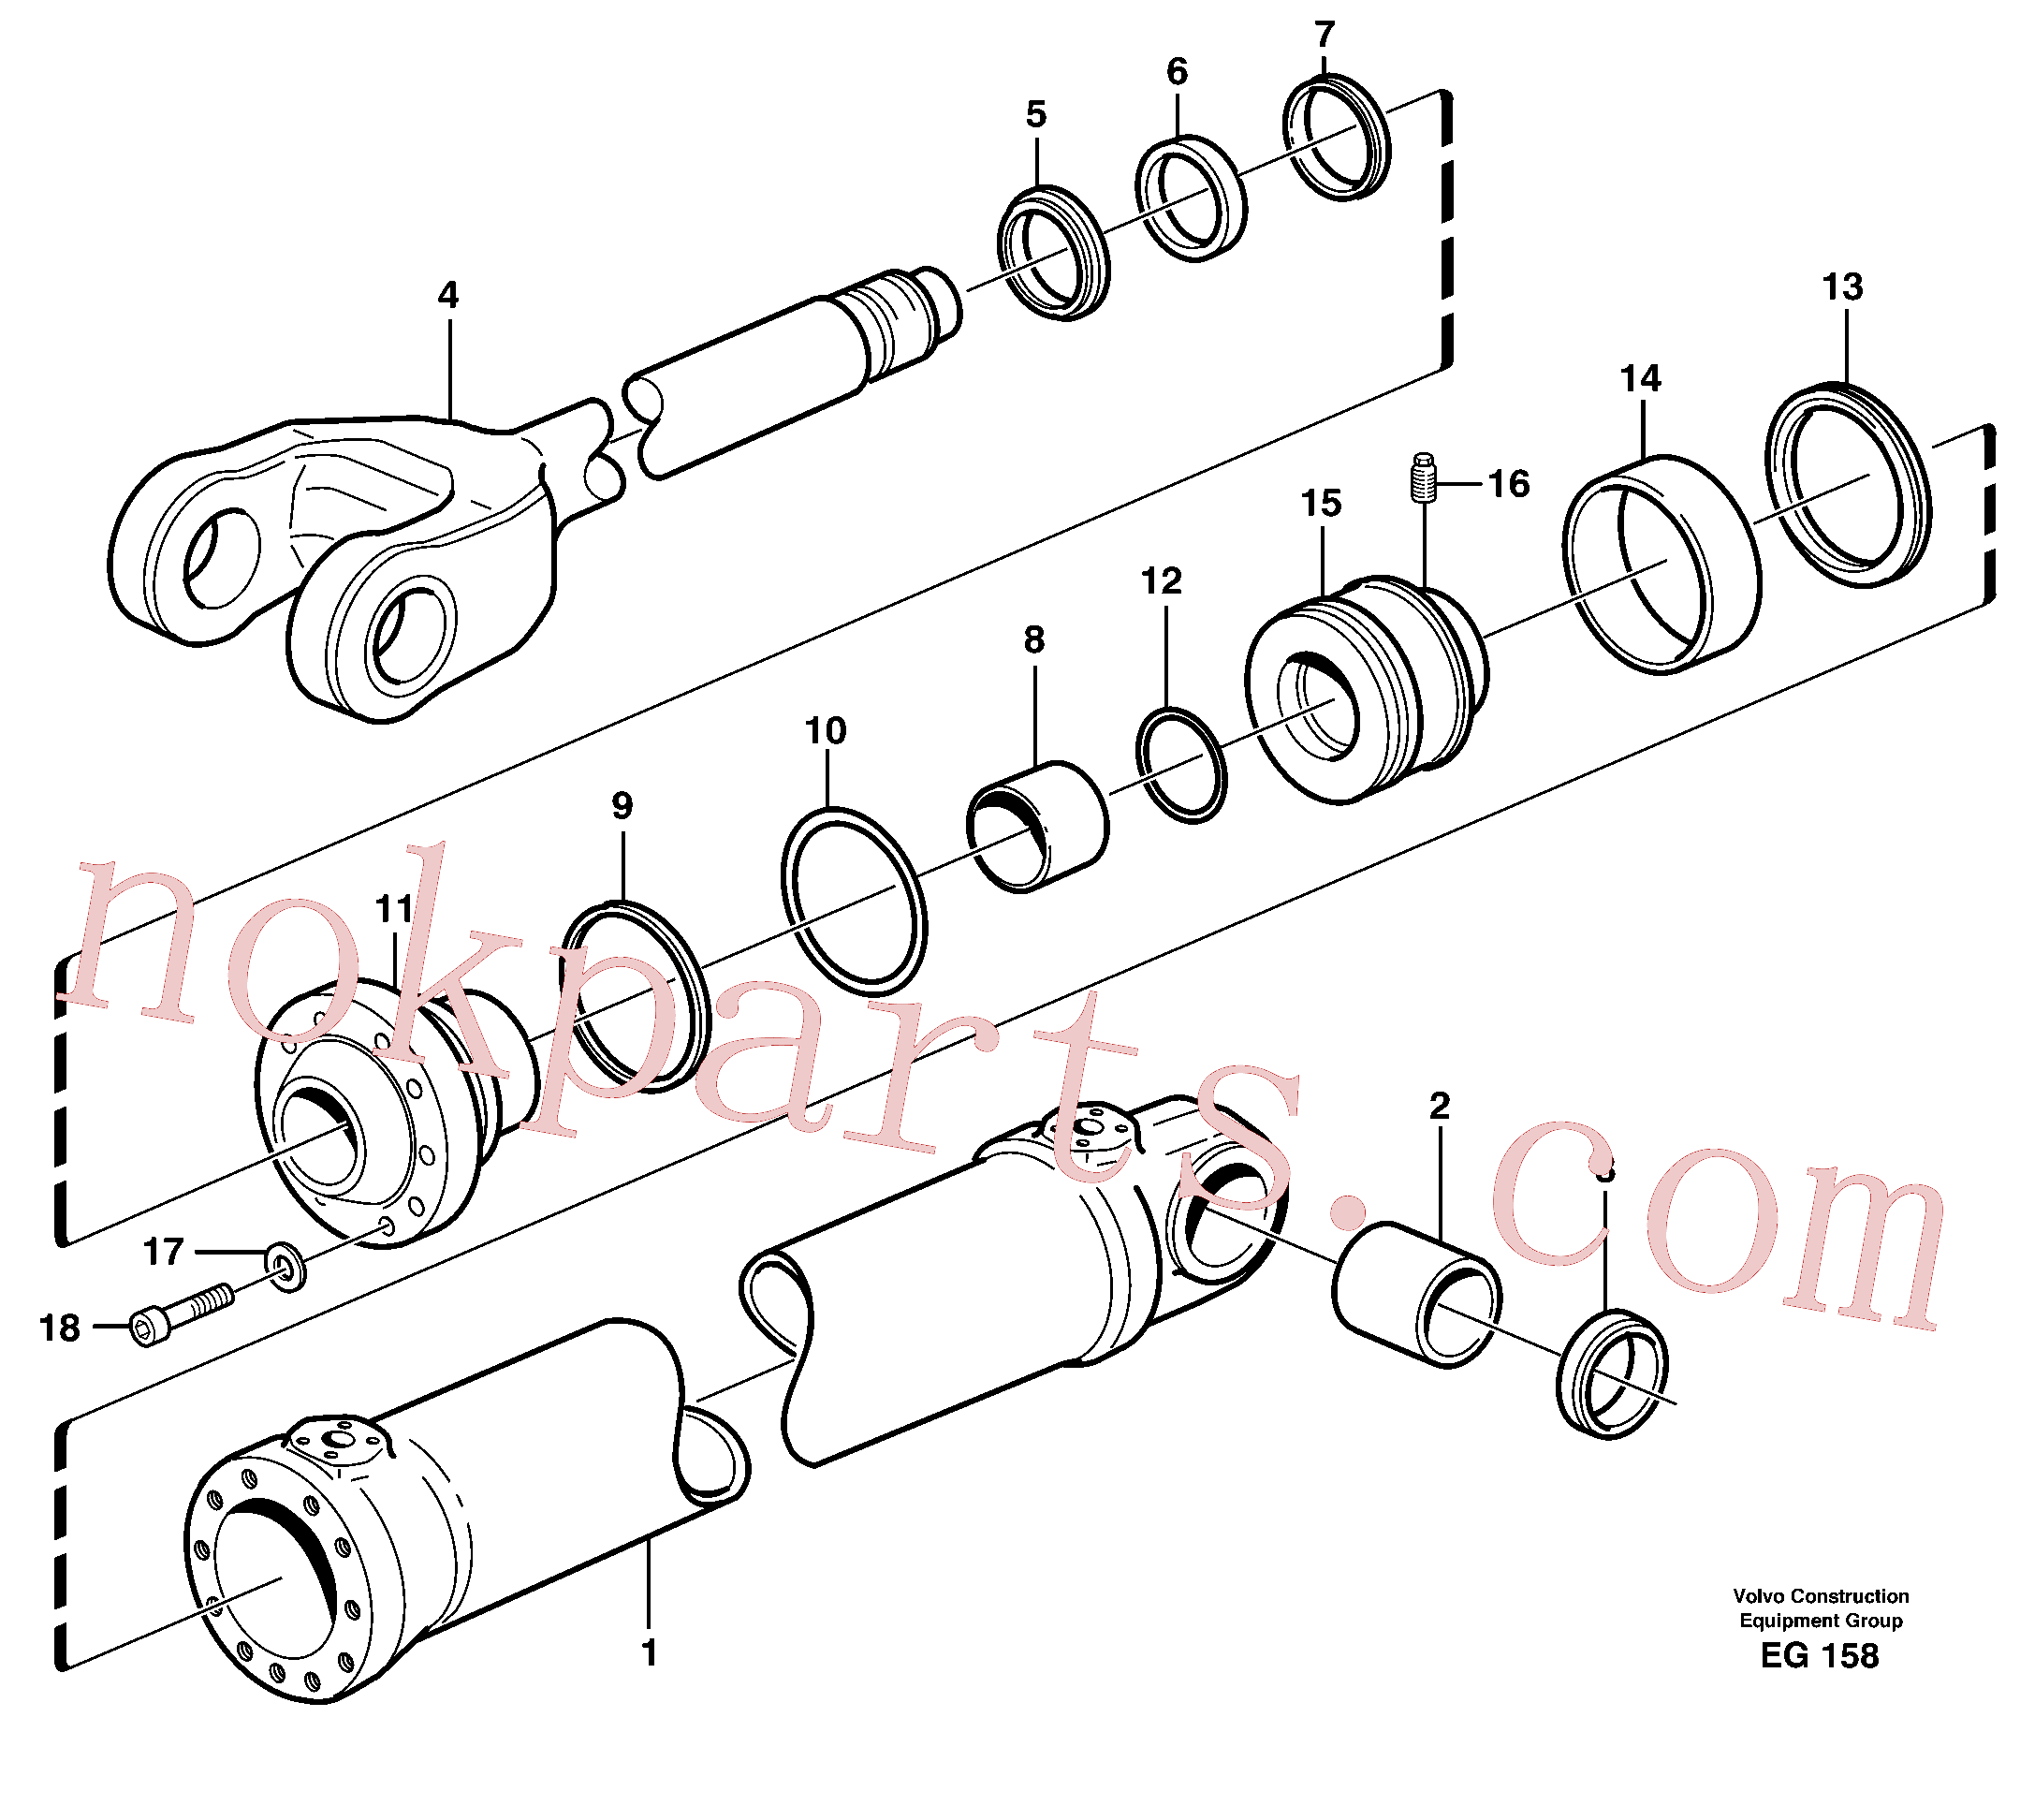 VOE11088029 for Volvo Hydraulic cylinder, lifting(EG158 assembly)